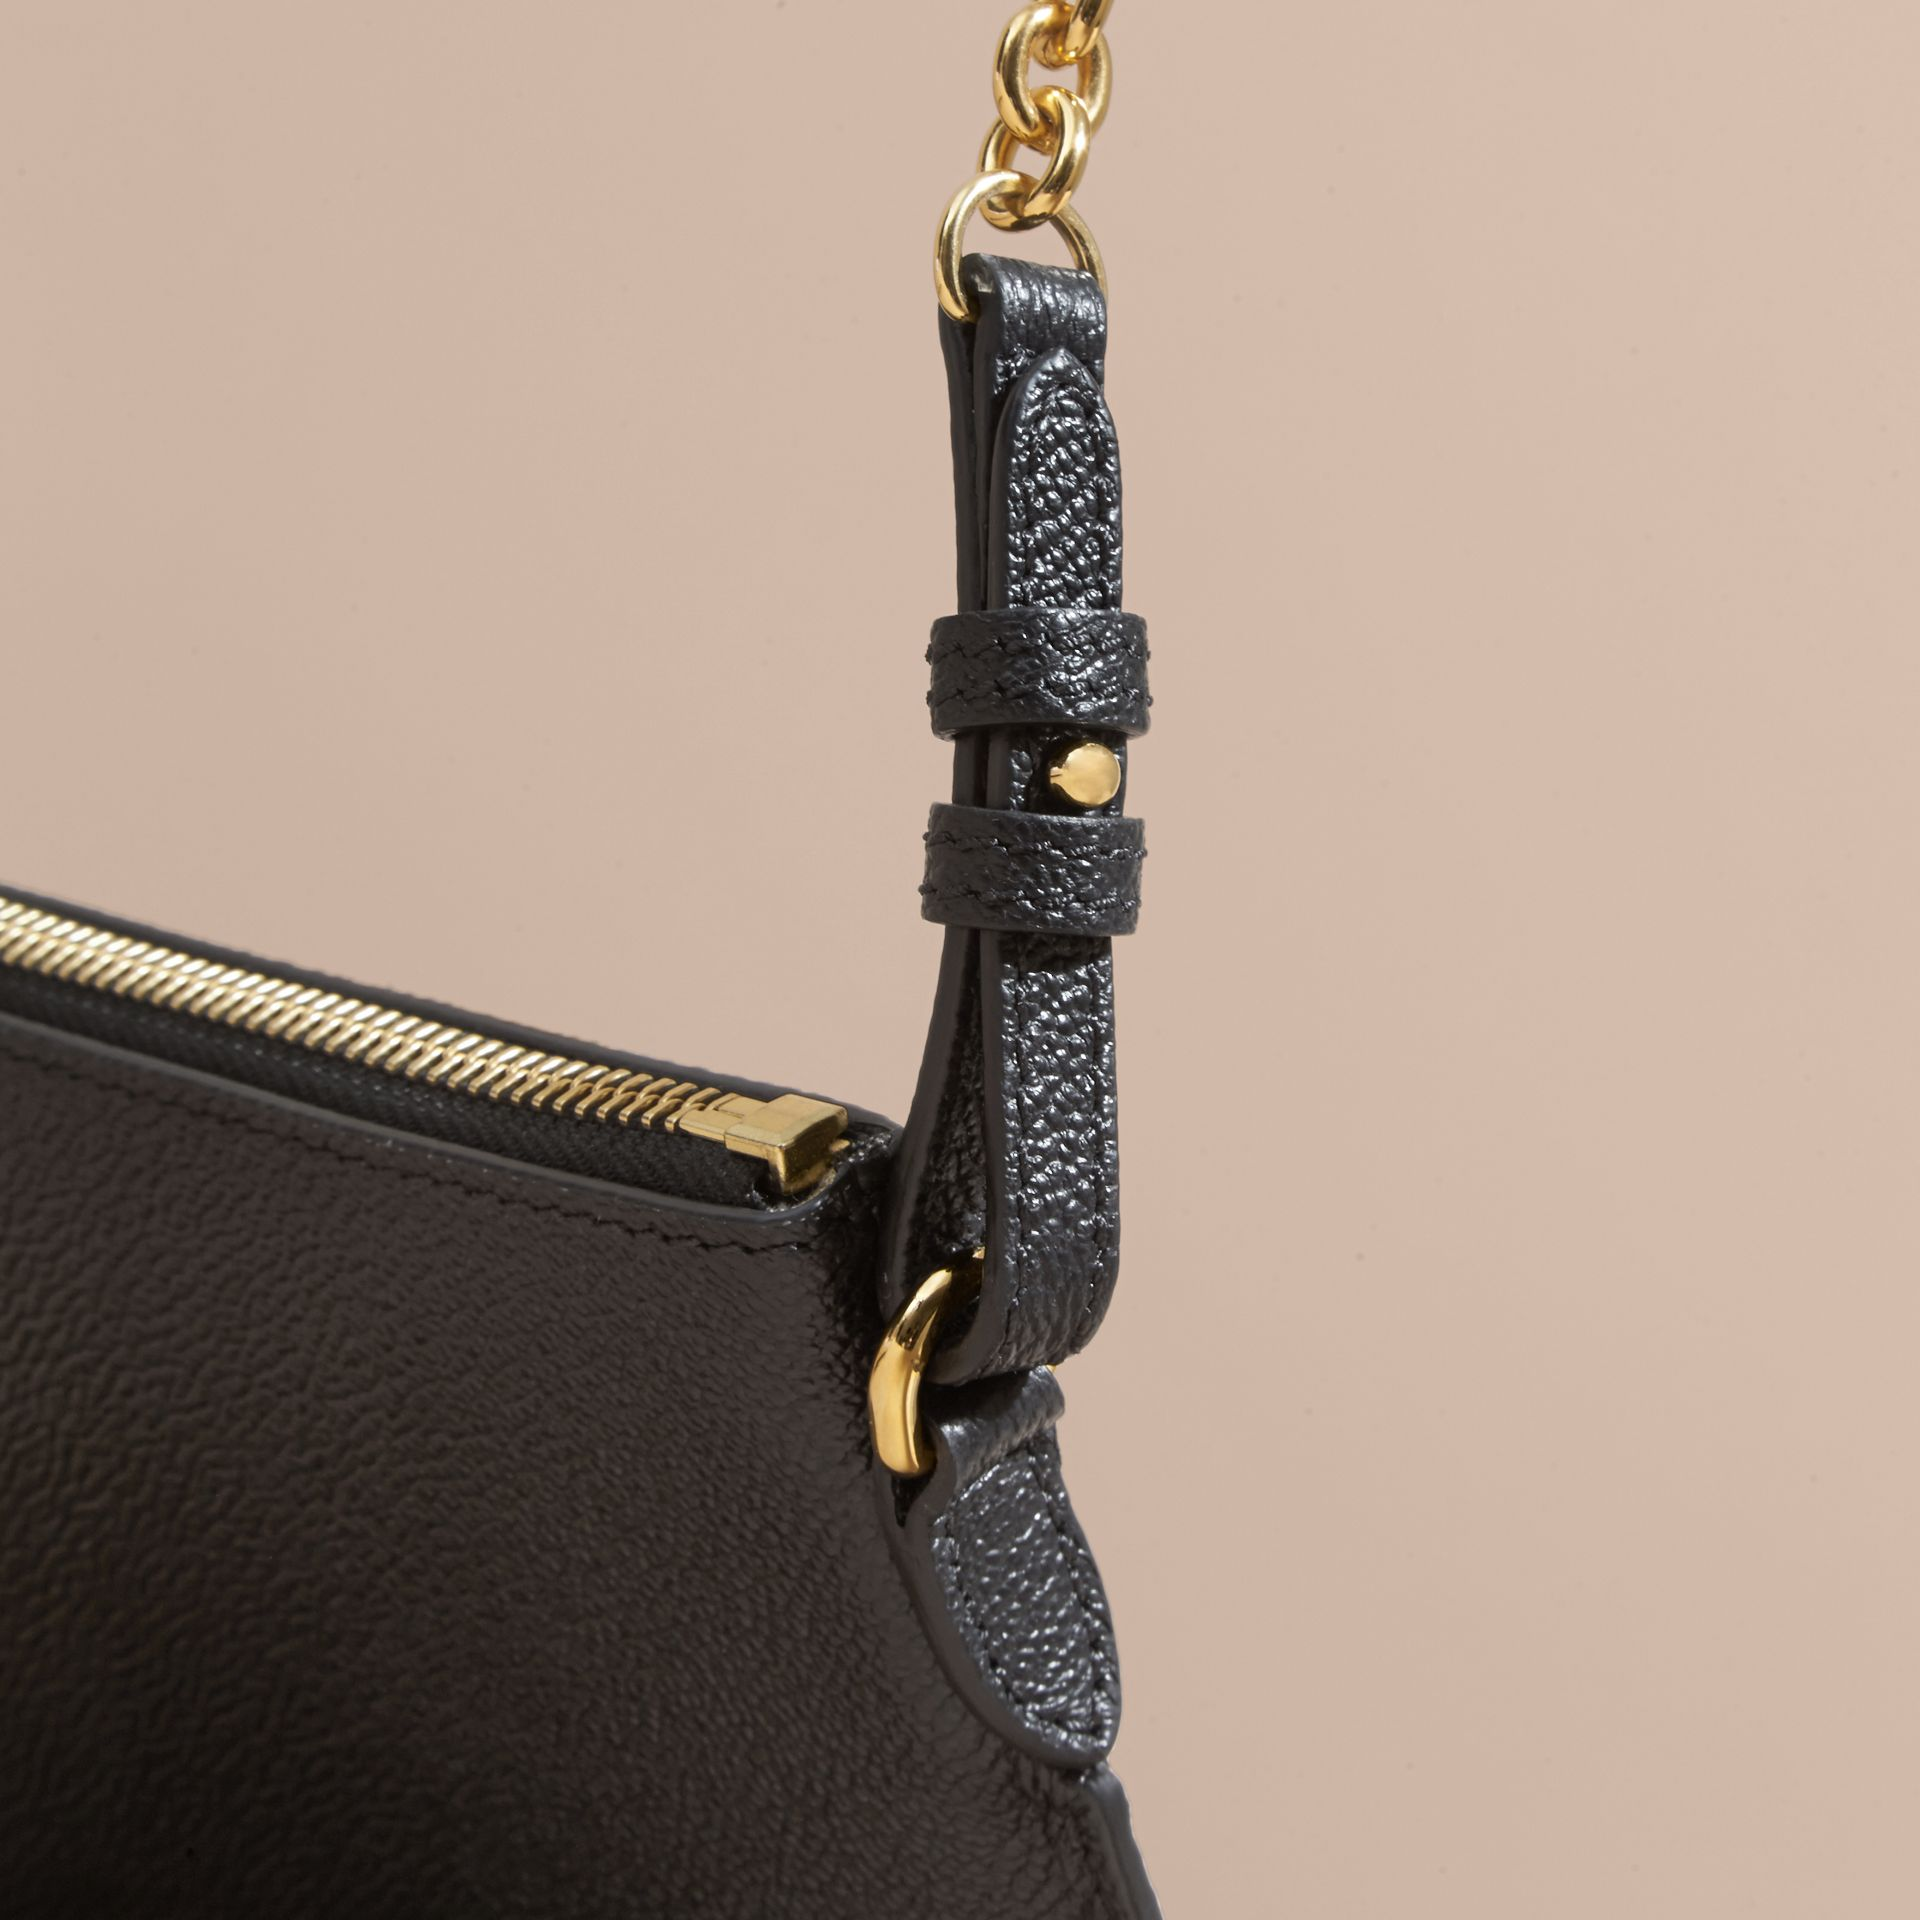 Leather Clutch Bag with Check Lining in Black - Women | Burberry Singapore - gallery image 7